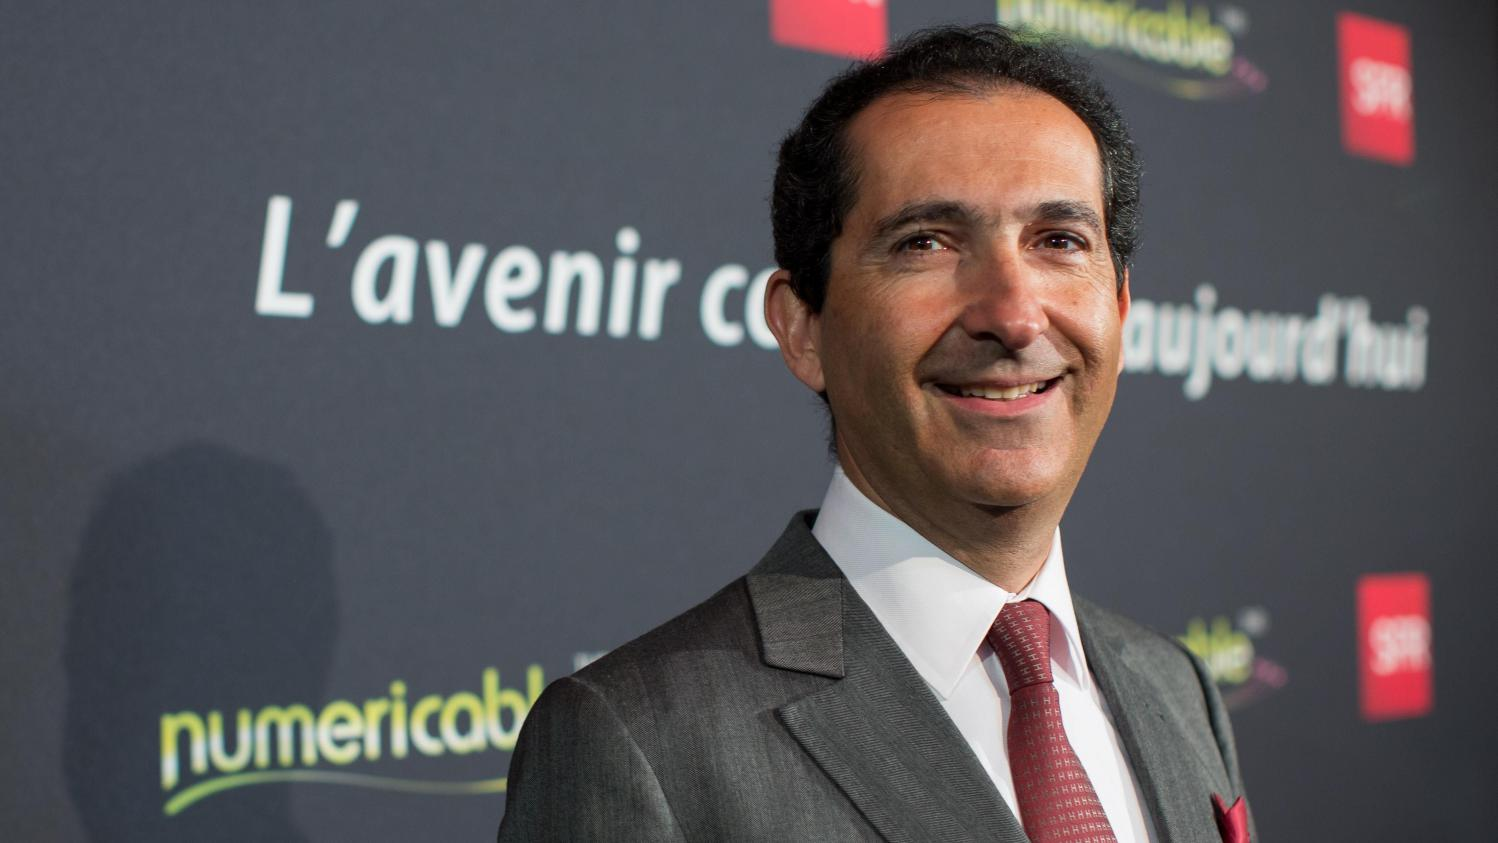 patrick-drahi